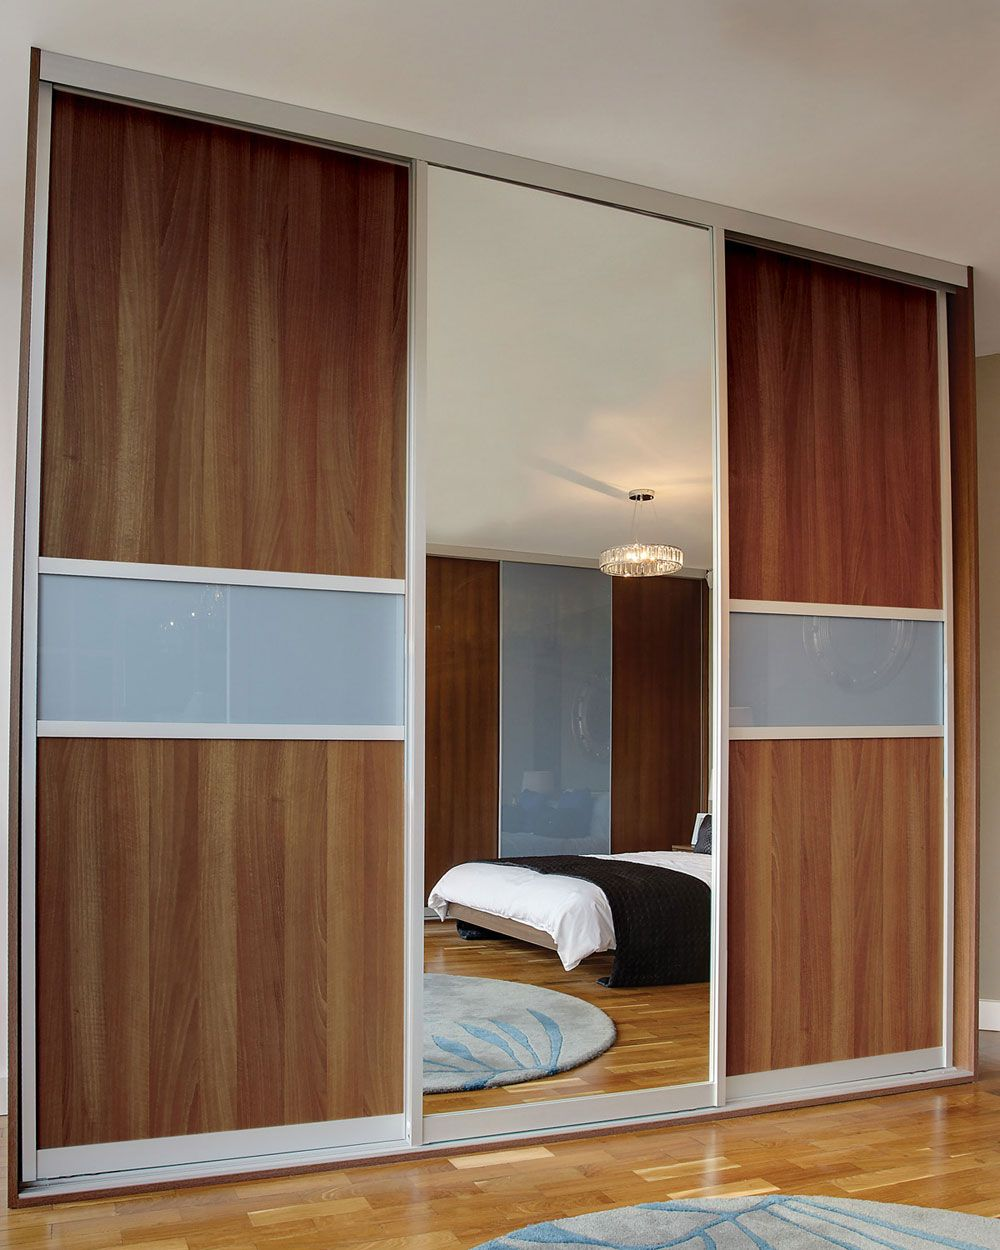 New sliding room dividers soundproof glass wall for loft for Sliding partition walls for home